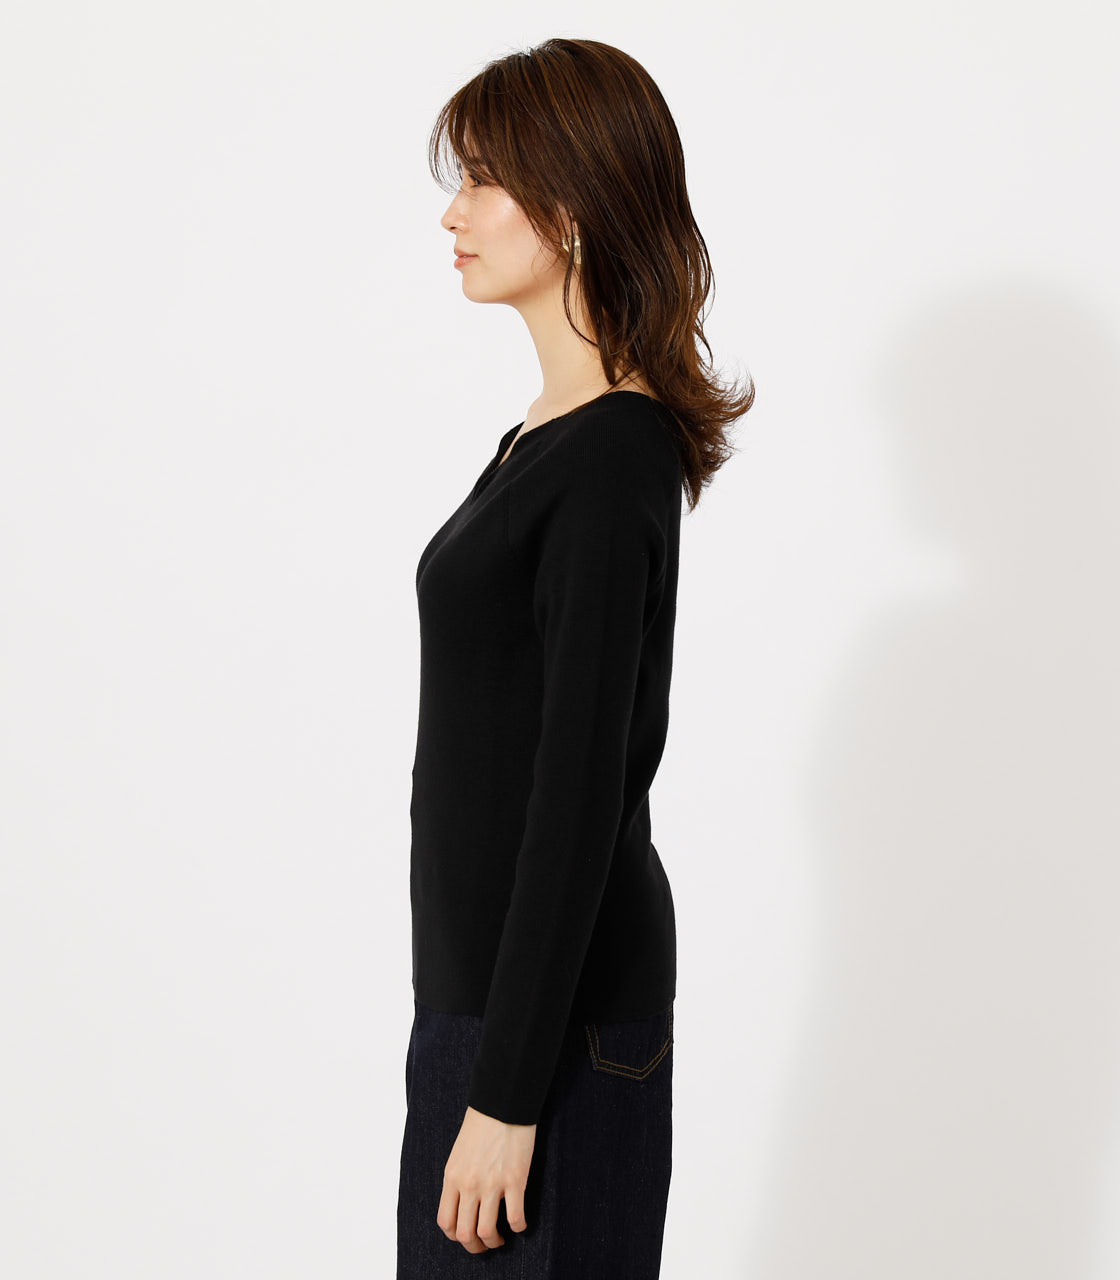 SCALLOP KNIT TOPS/スカルプニットトップス 詳細画像 BLK 5